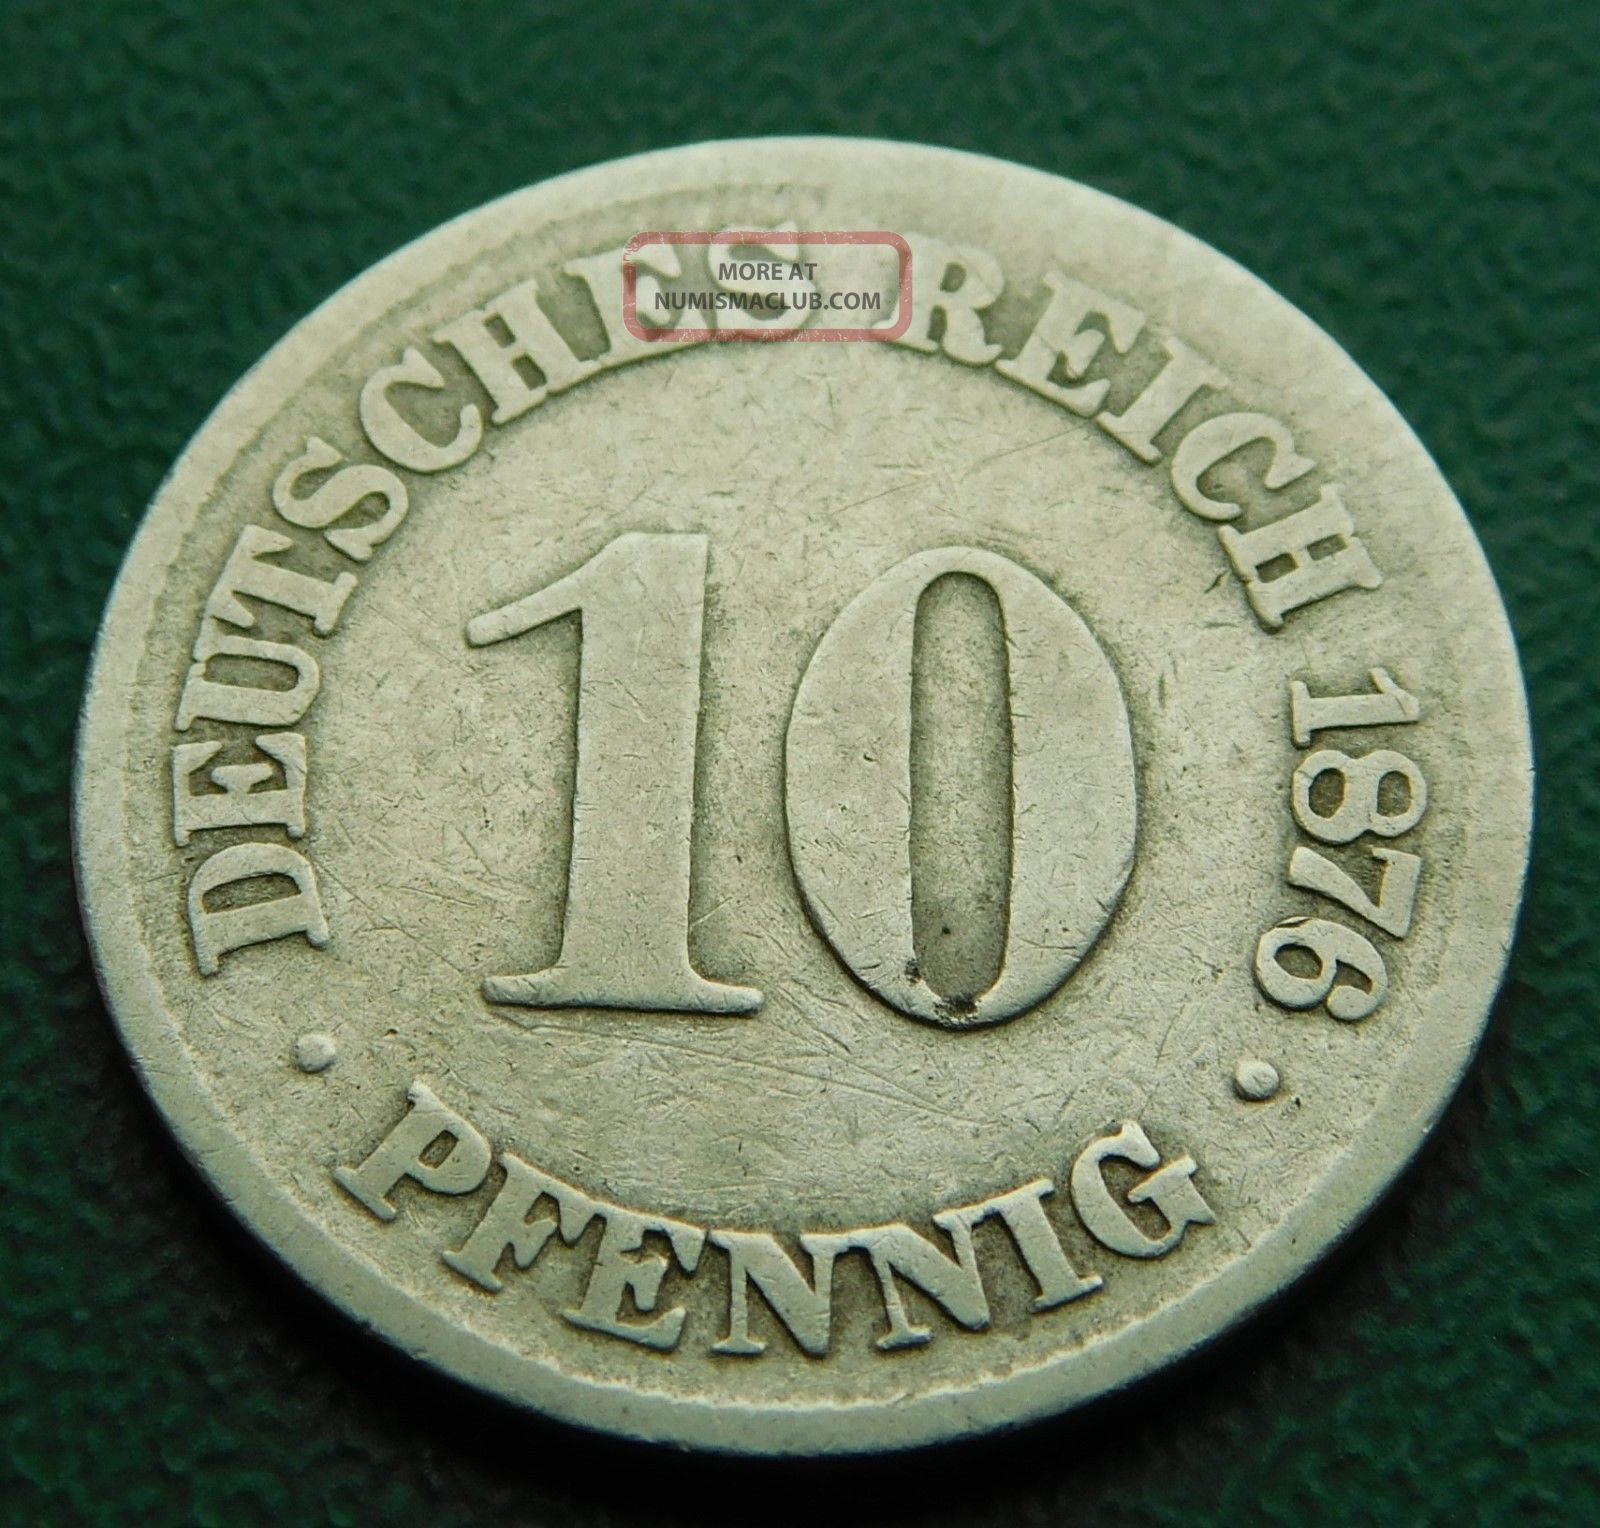 10 Pfennig 1876 C.  German Empire Coin.  Km 4.  Germany.  Very Fine.  C311 Germany photo